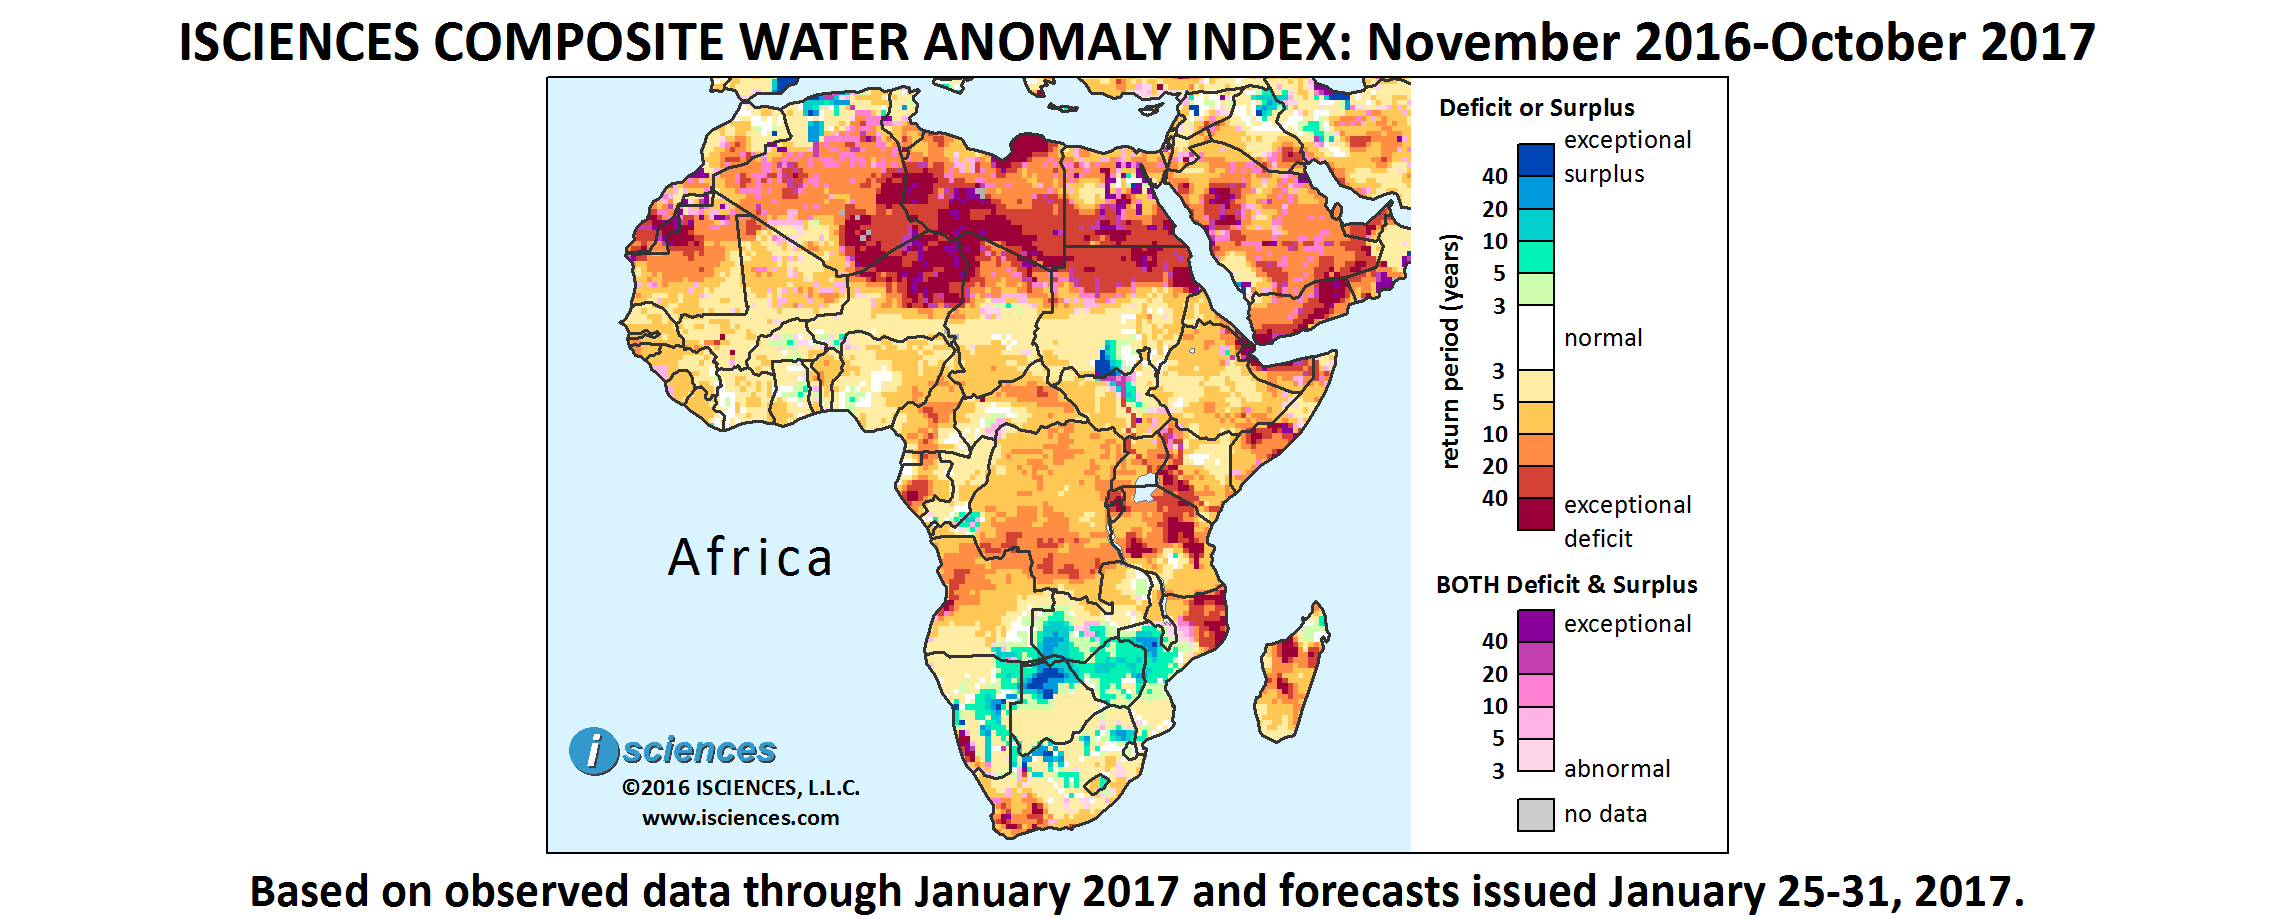 ISciences_Africa_R201701_12mo_twit_pic.png